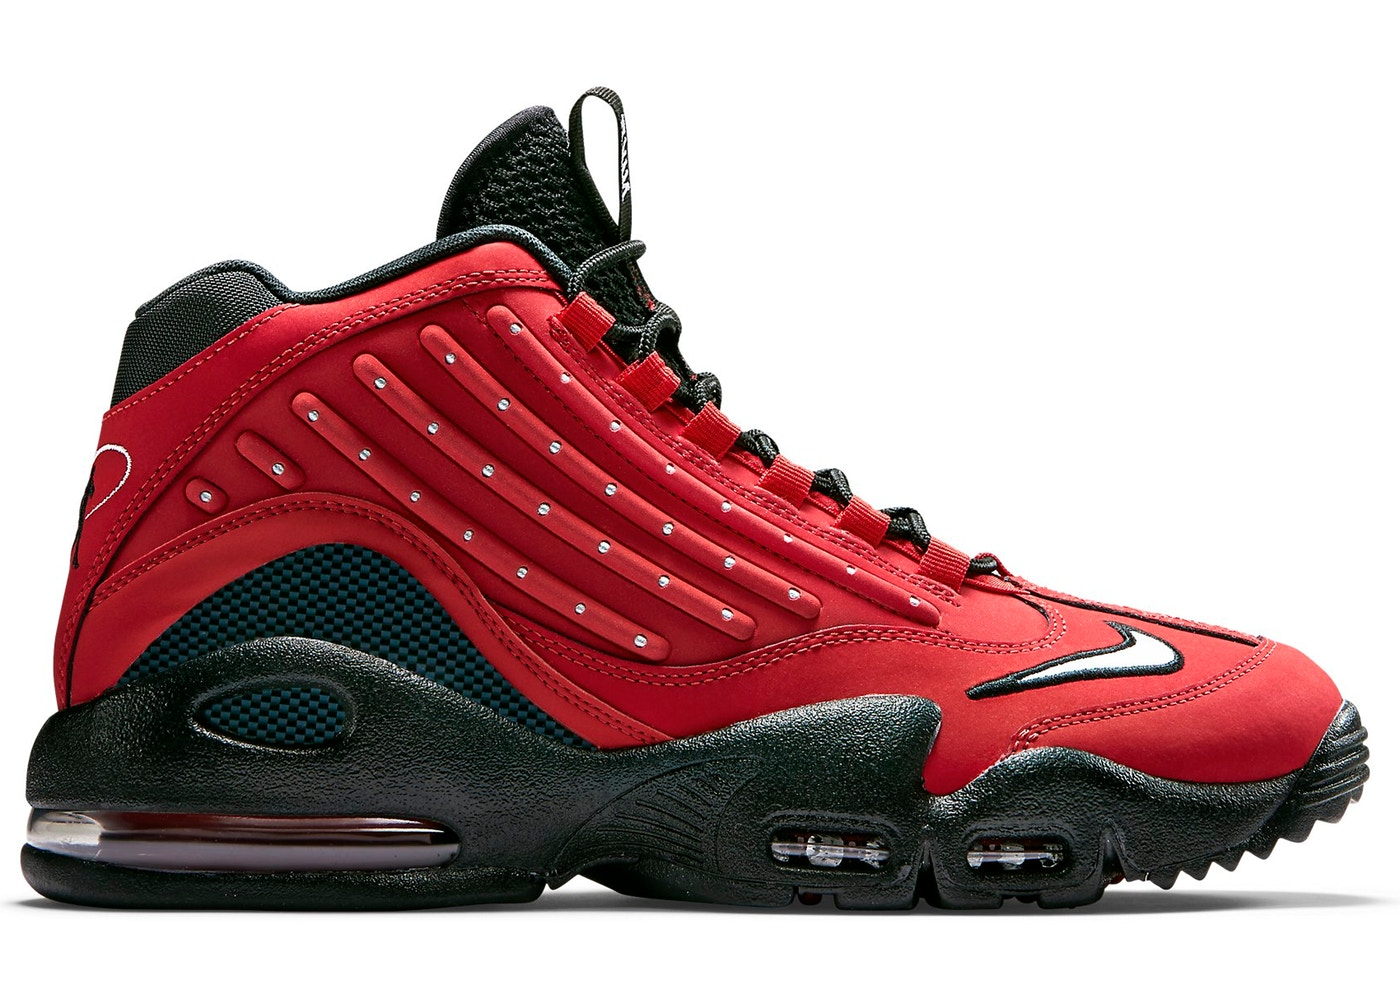 9a122a6073 Sell. or Ask. Size: 11. View All Bids. Air Griffey Max 2 Cincinnati Reds